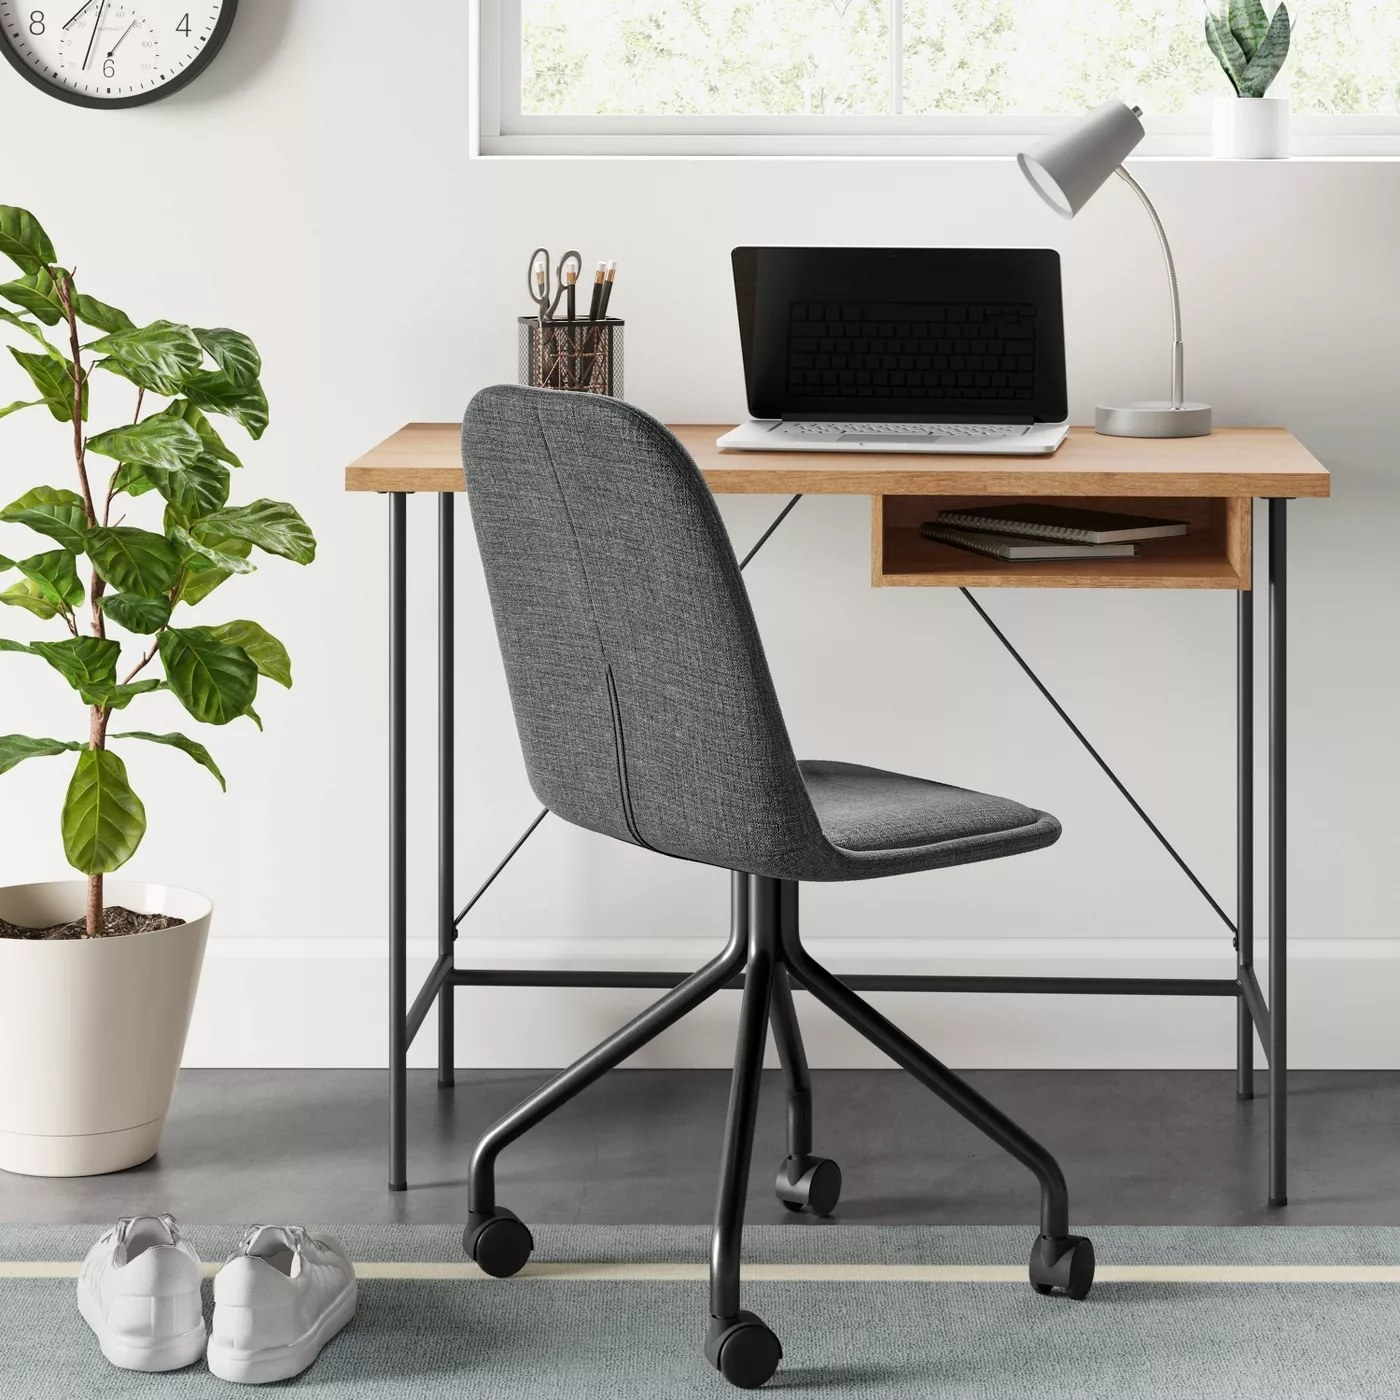 The wood and metal desk with a hidden shelf in an office